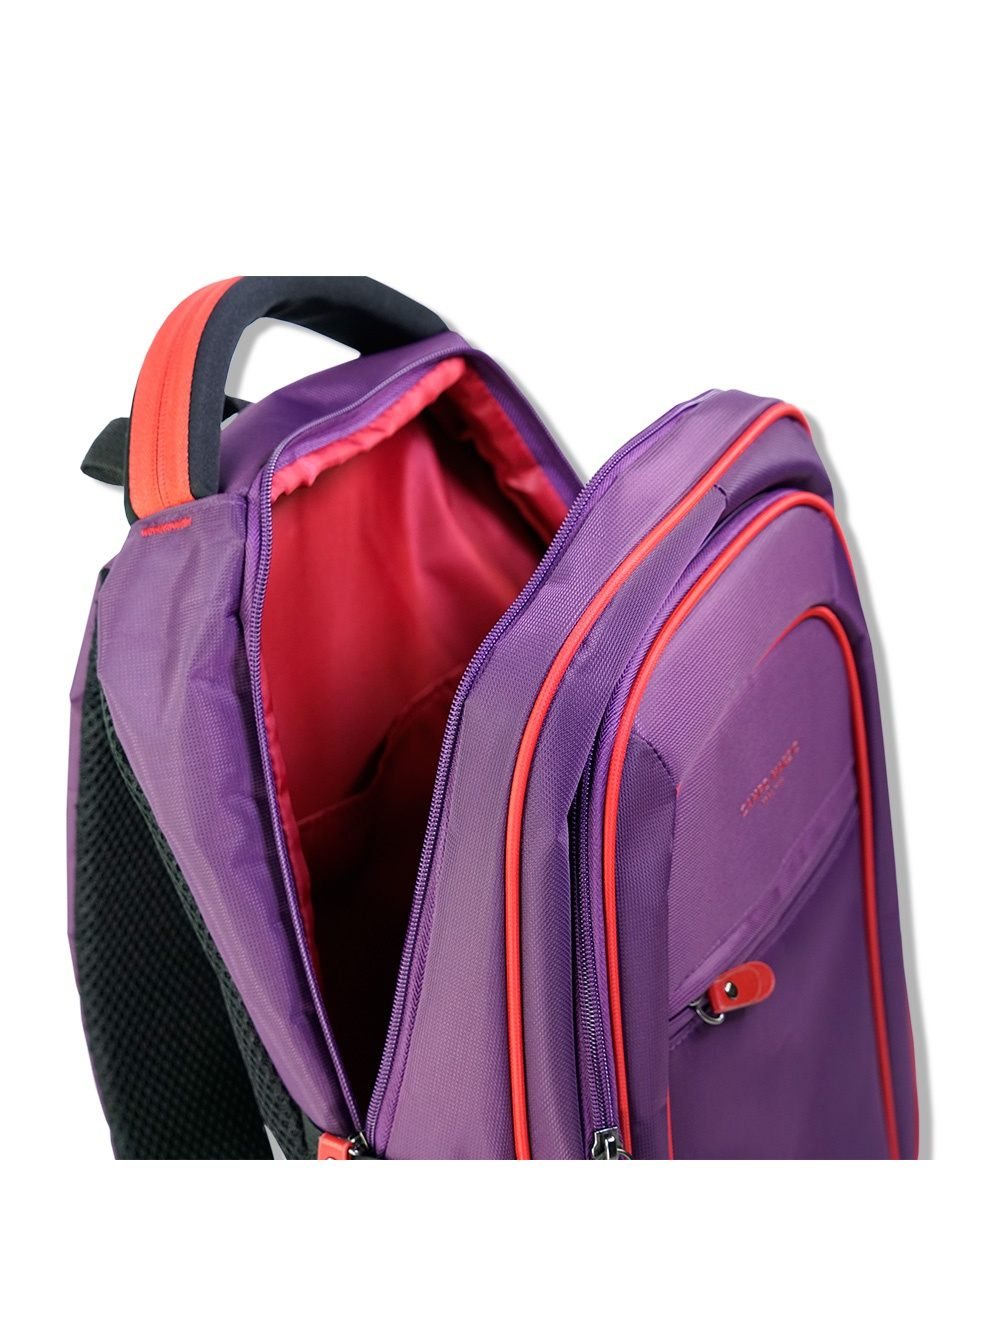 Small Nylon Backpack - Violet